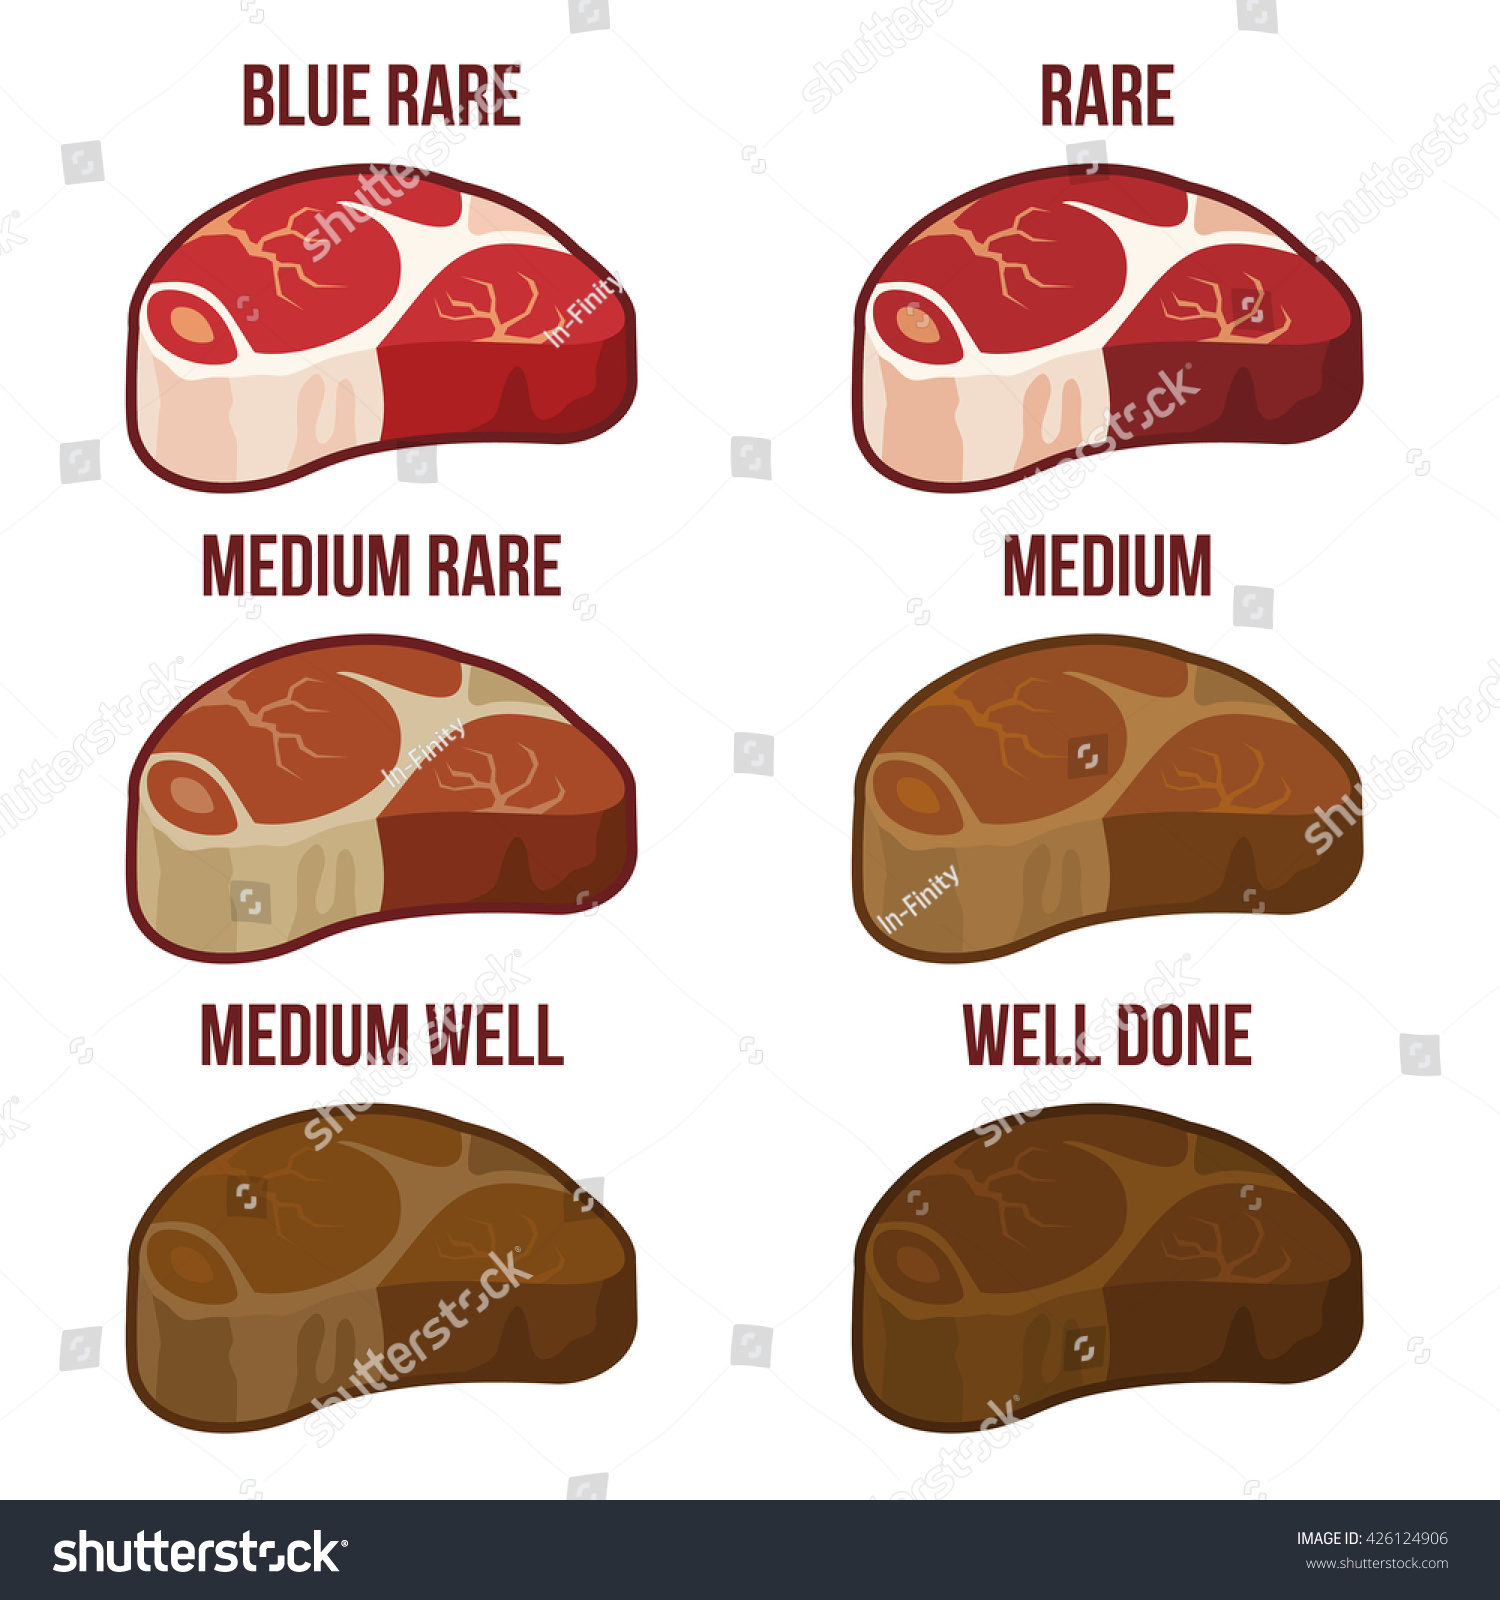 degrees steak doneness icons set blueのイラスト素材 426124906